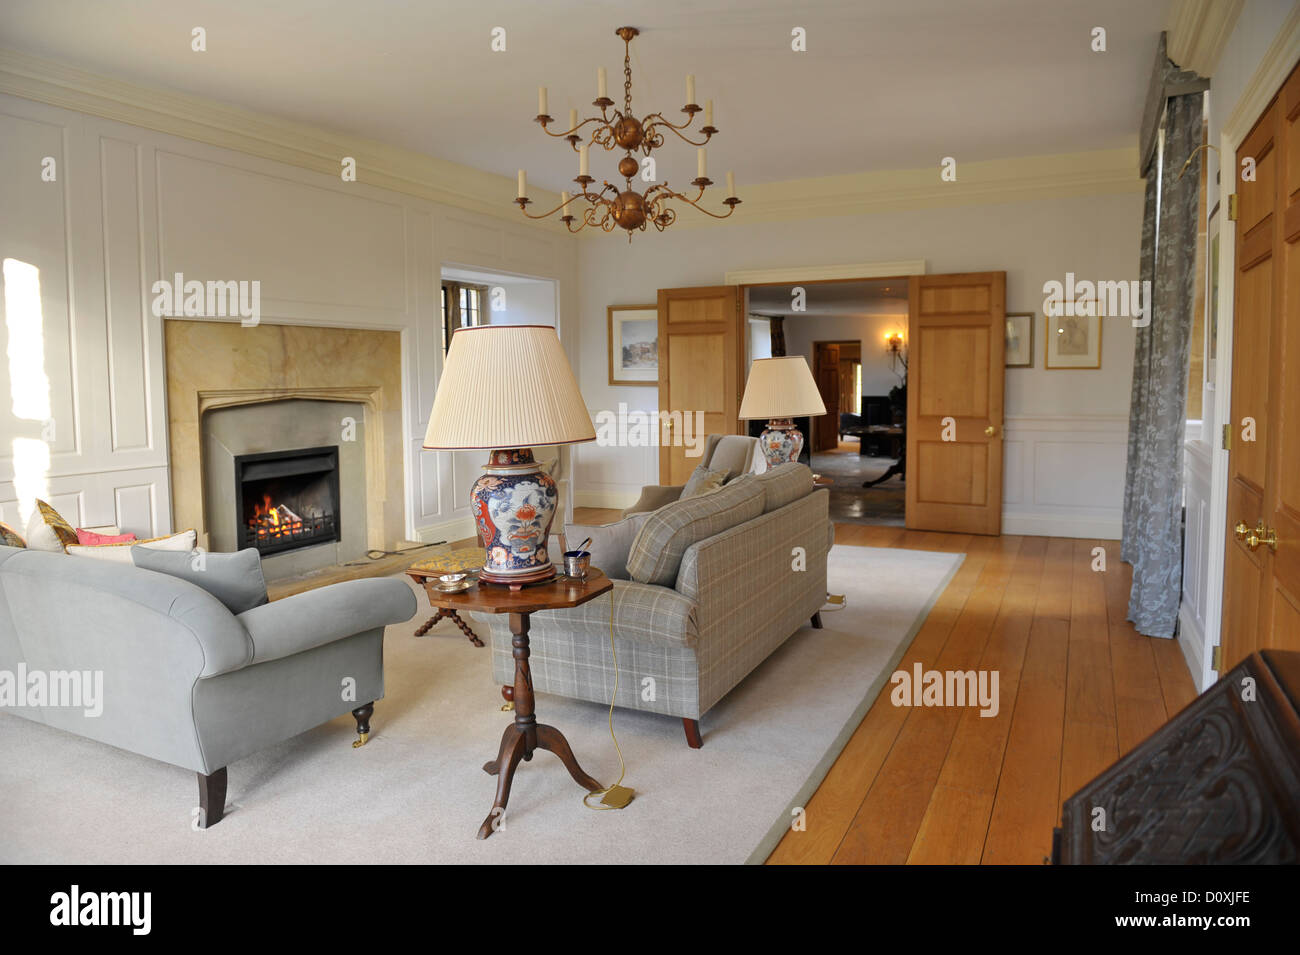 Country Lounge Room High Resolution Stock Photography And Images Alamy